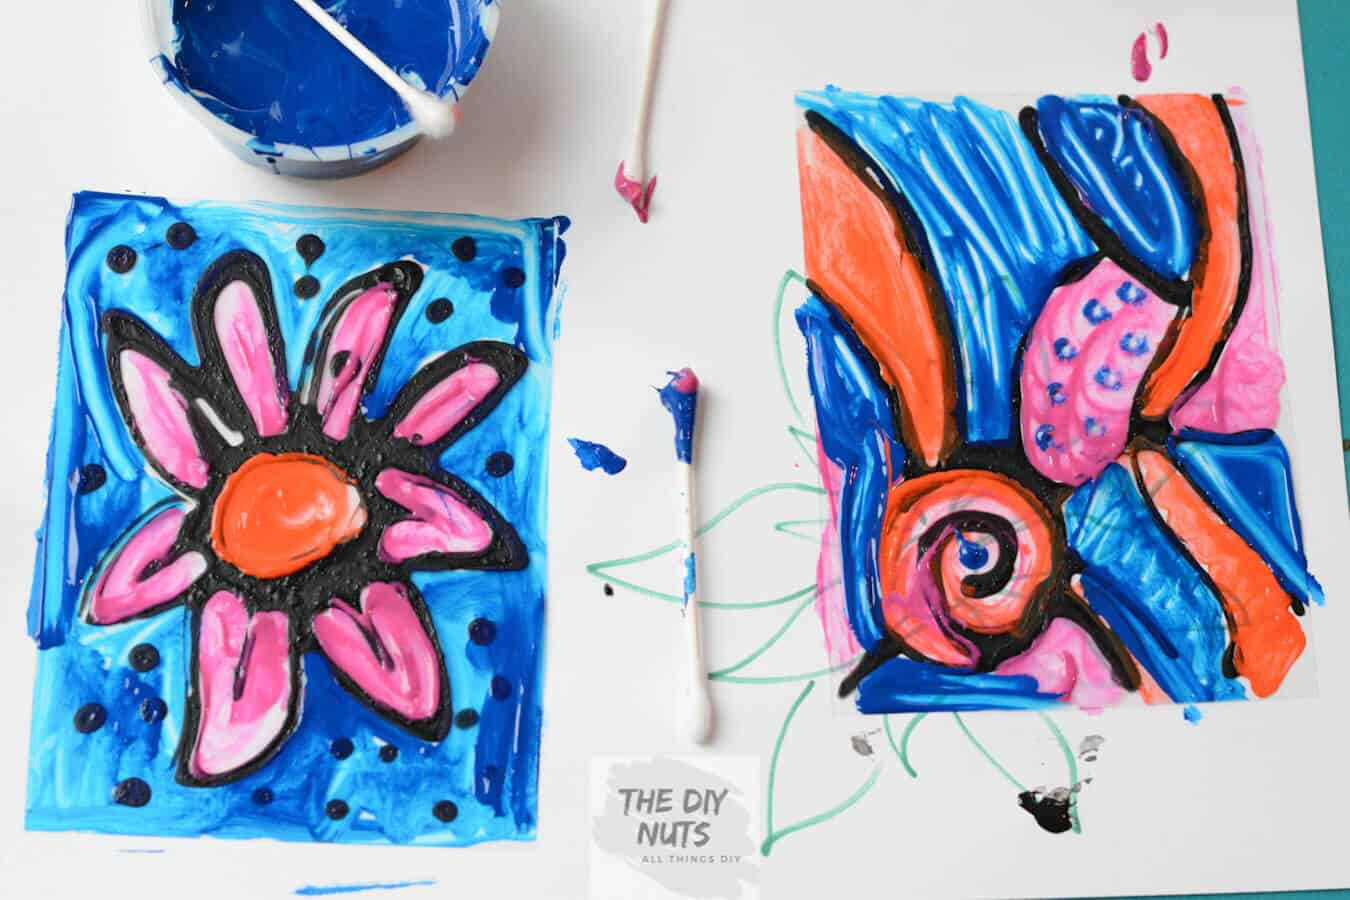 Painted transparency with colored q-tips to create a DIY stained glass art project for kids